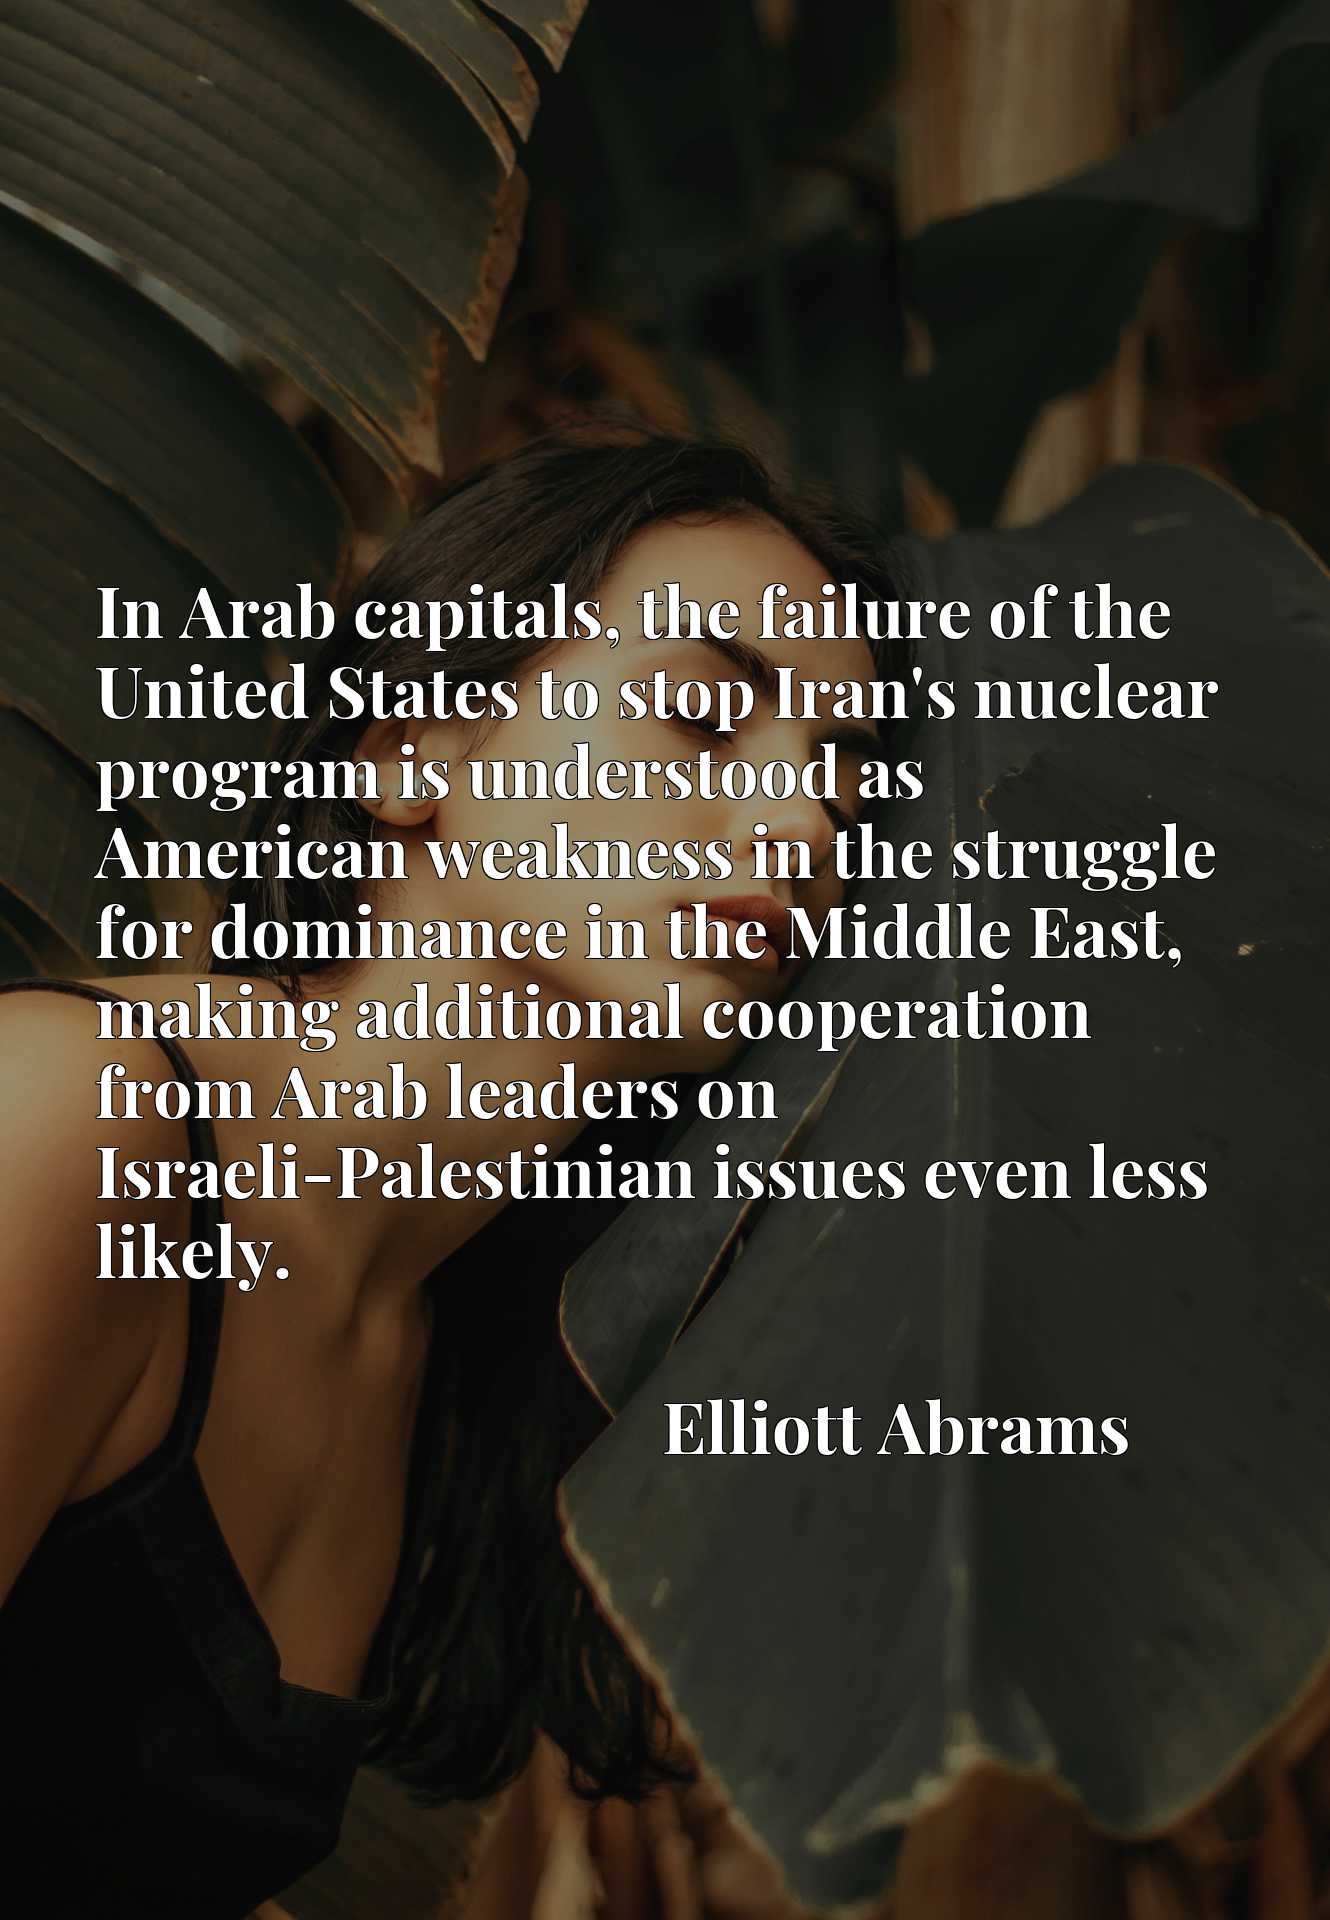 In Arab capitals, the failure of the United States to stop Iran's nuclear program is understood as American weakness in the struggle for dominance in the Middle East, making additional cooperation from Arab leaders on Israeli-Palestinian issues even less likely.